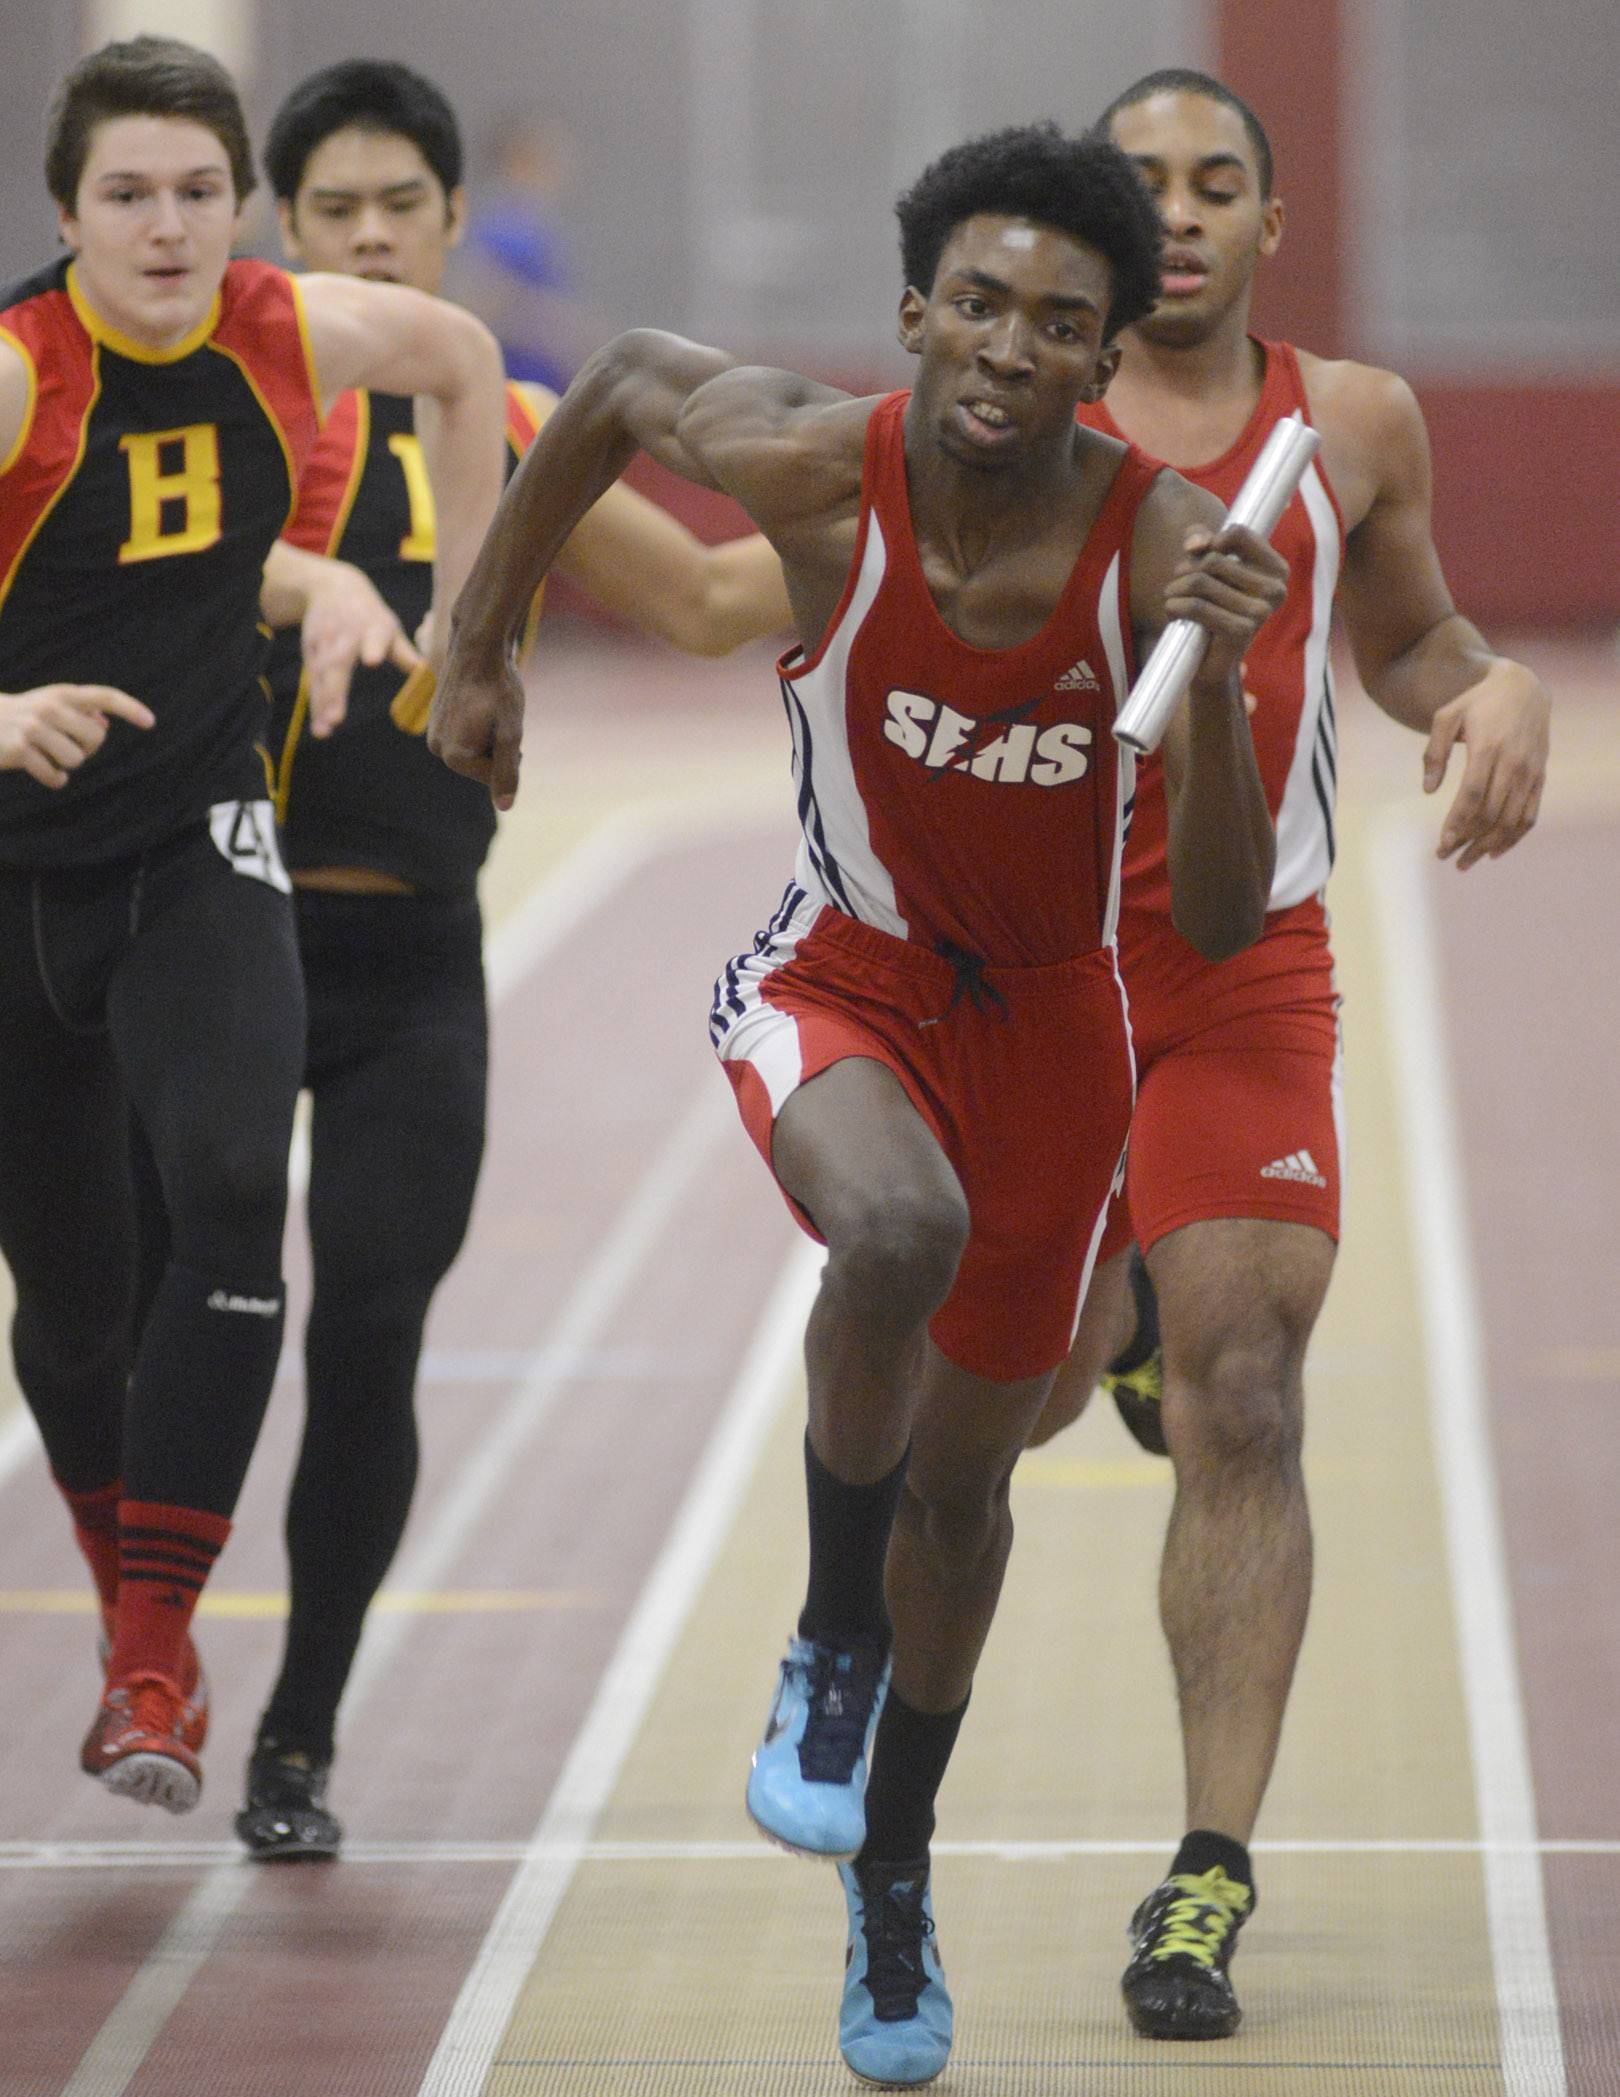 South Elgin's Marshawn Lewis is handed the baton from teammate James Dockens in the final heat of the 800-meter relay at the Upstate Eight Conference indoor meet in Batavia last month.